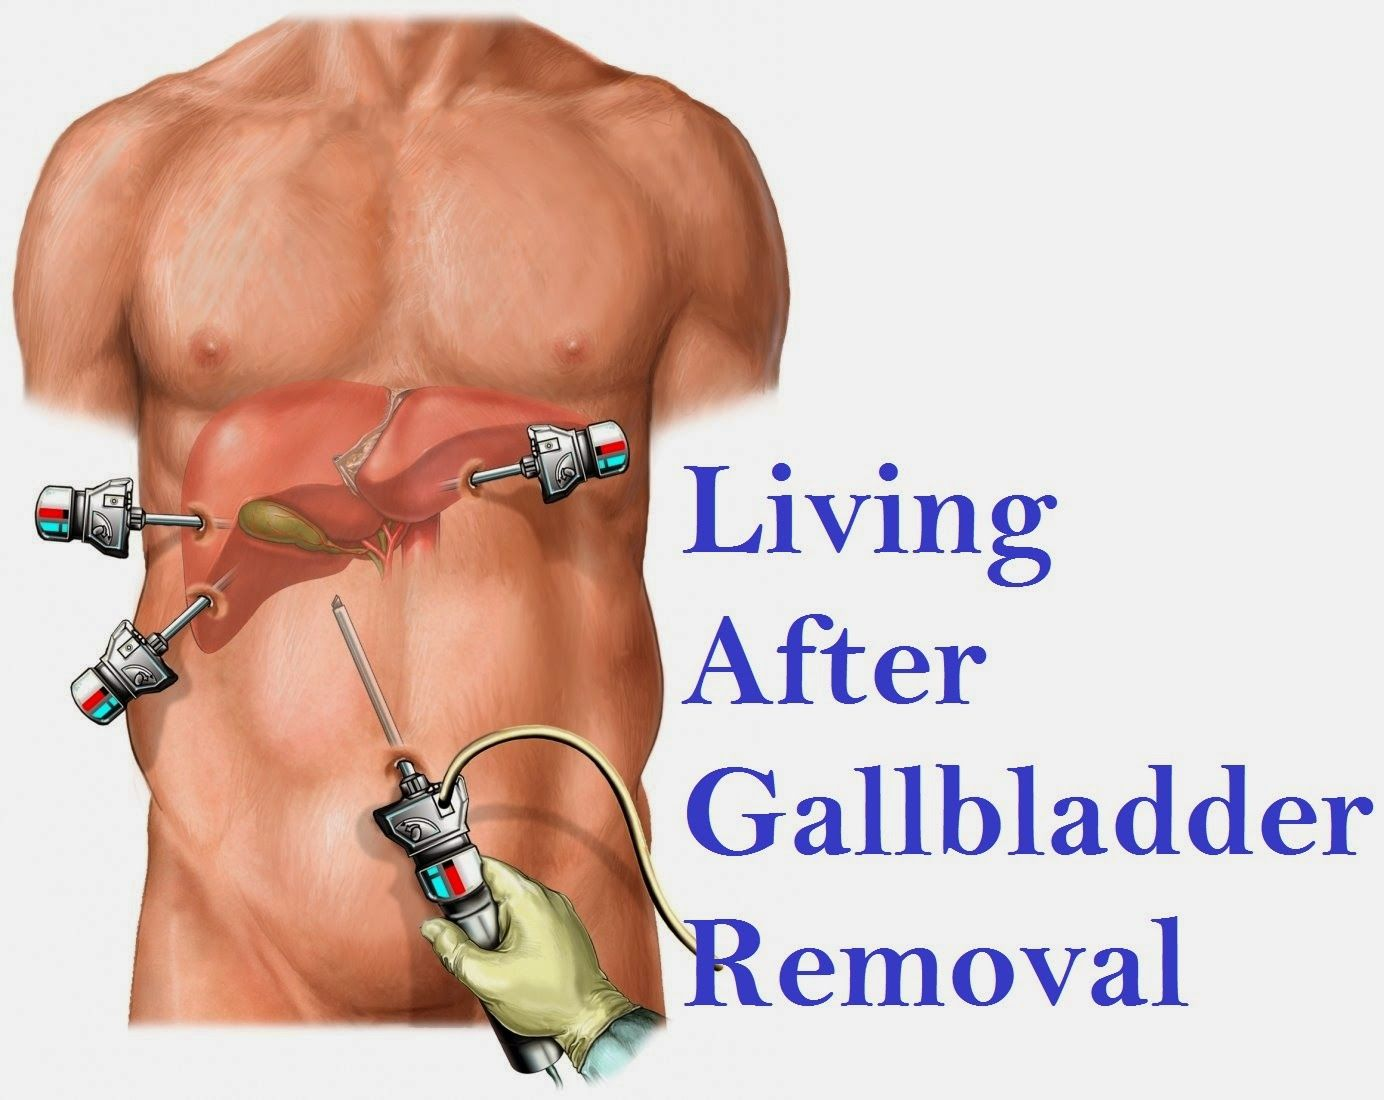 Do you lose weight after gallbladder removed